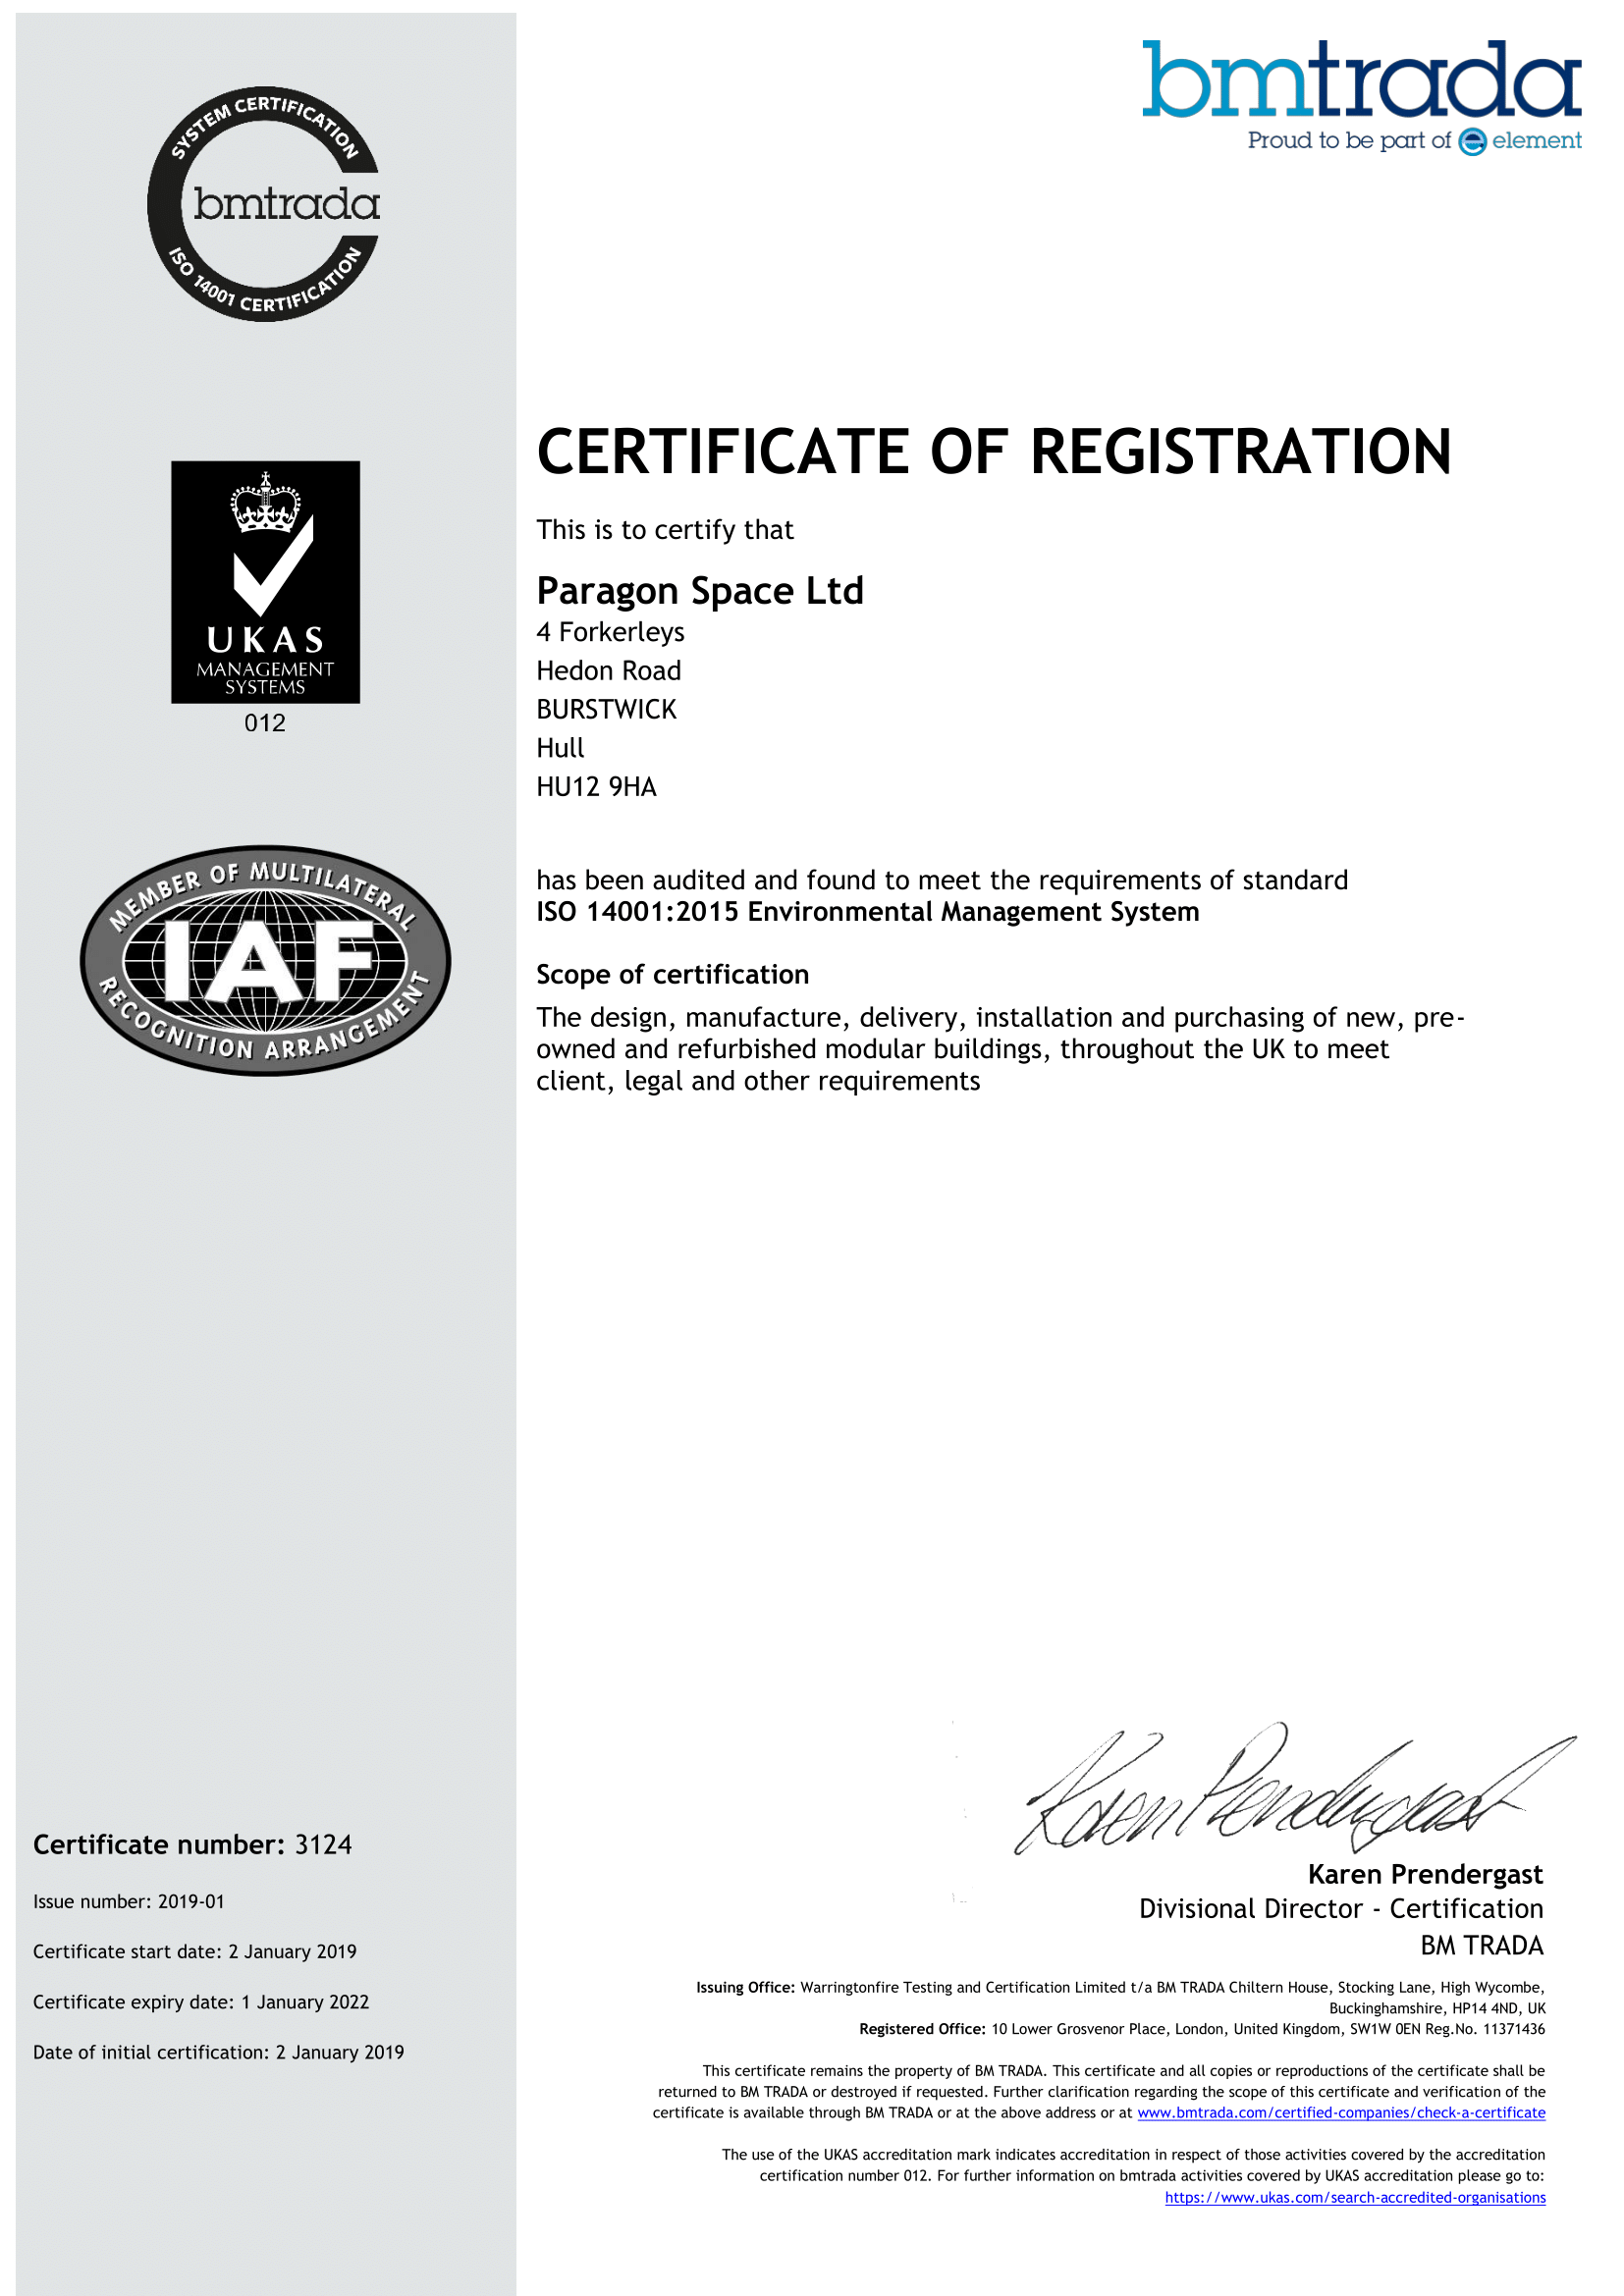 ISO14001:2015 EMS Certificate